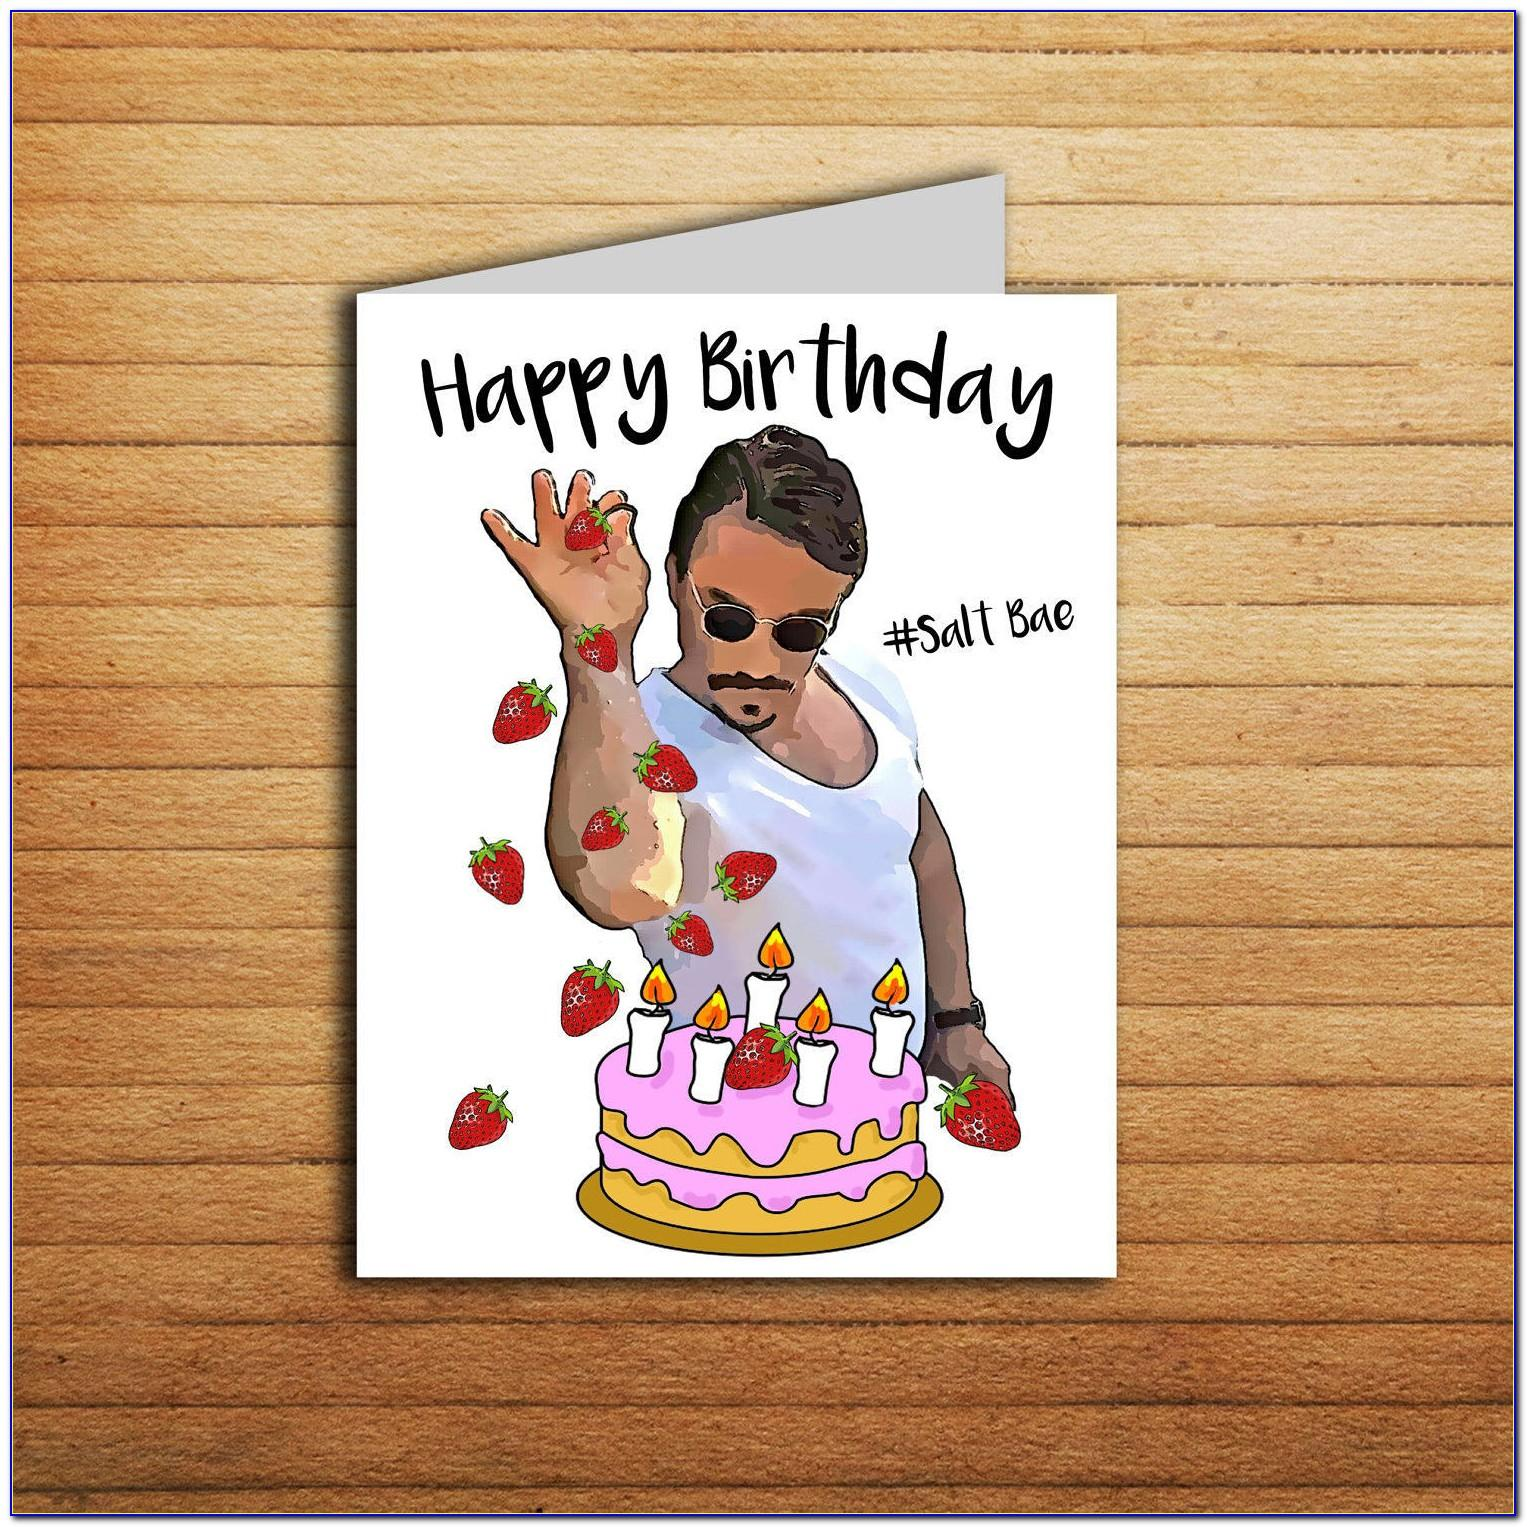 Free Online Birthday Cards Funny Animated